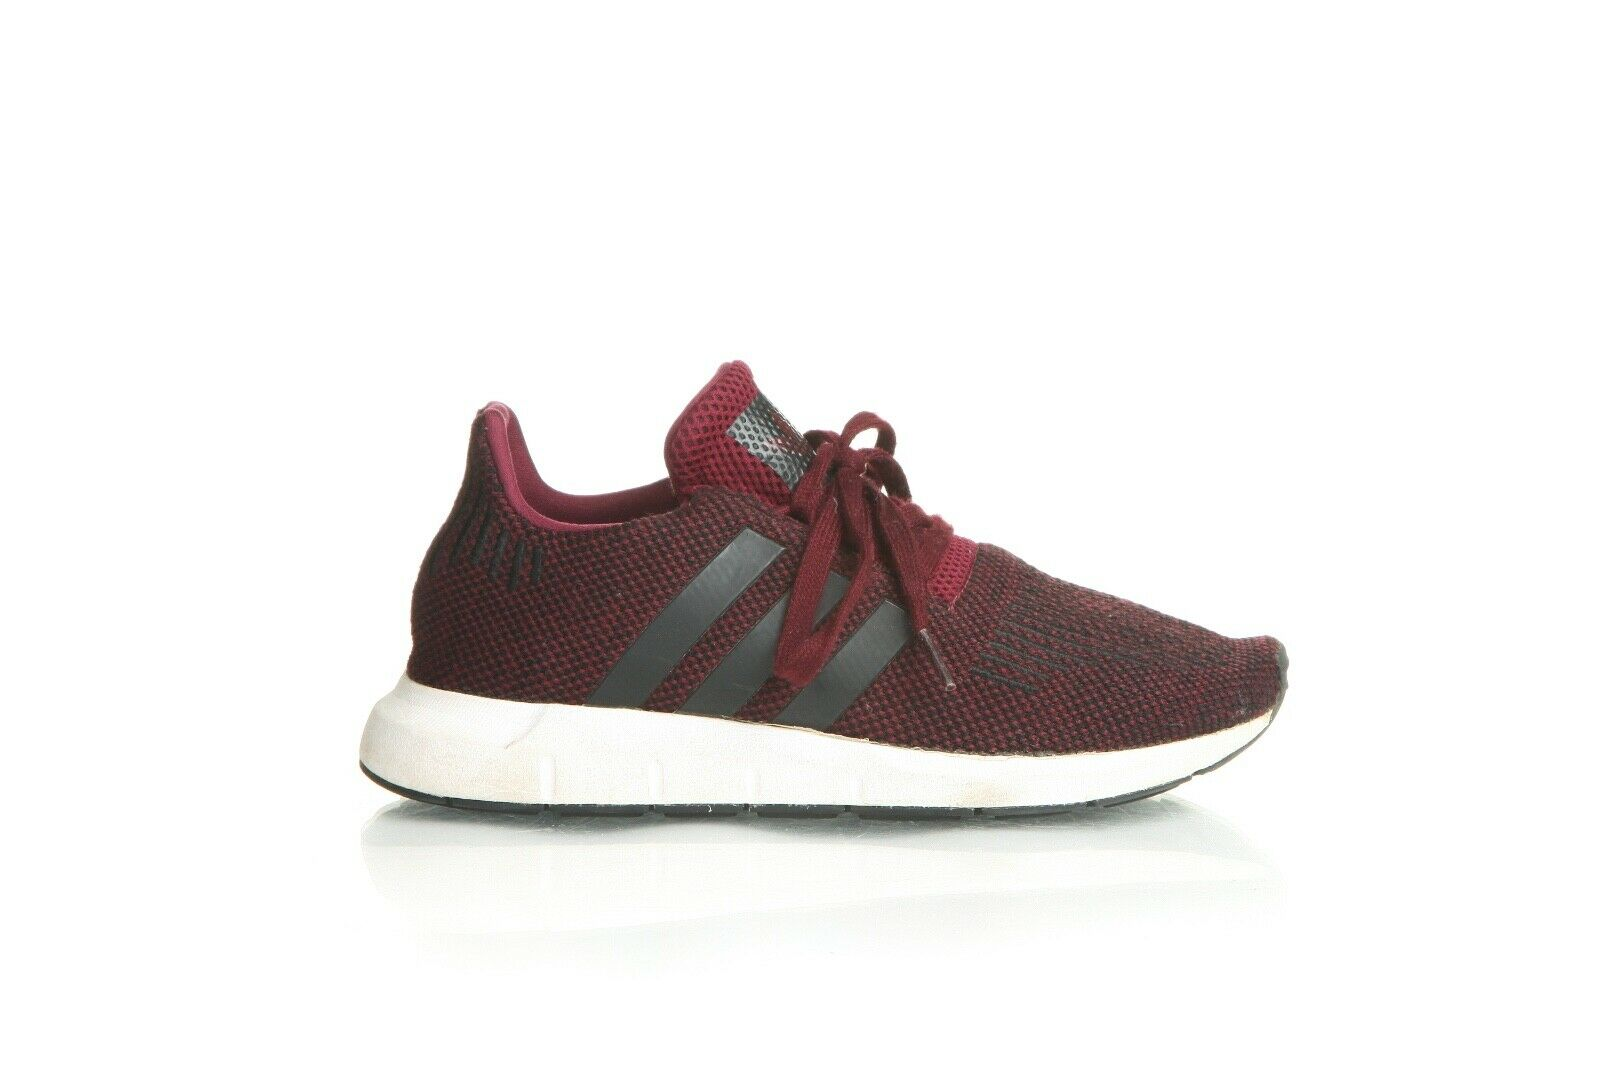 ADIDAS Swift Run Ortholite Knit Sneakers Size Y4